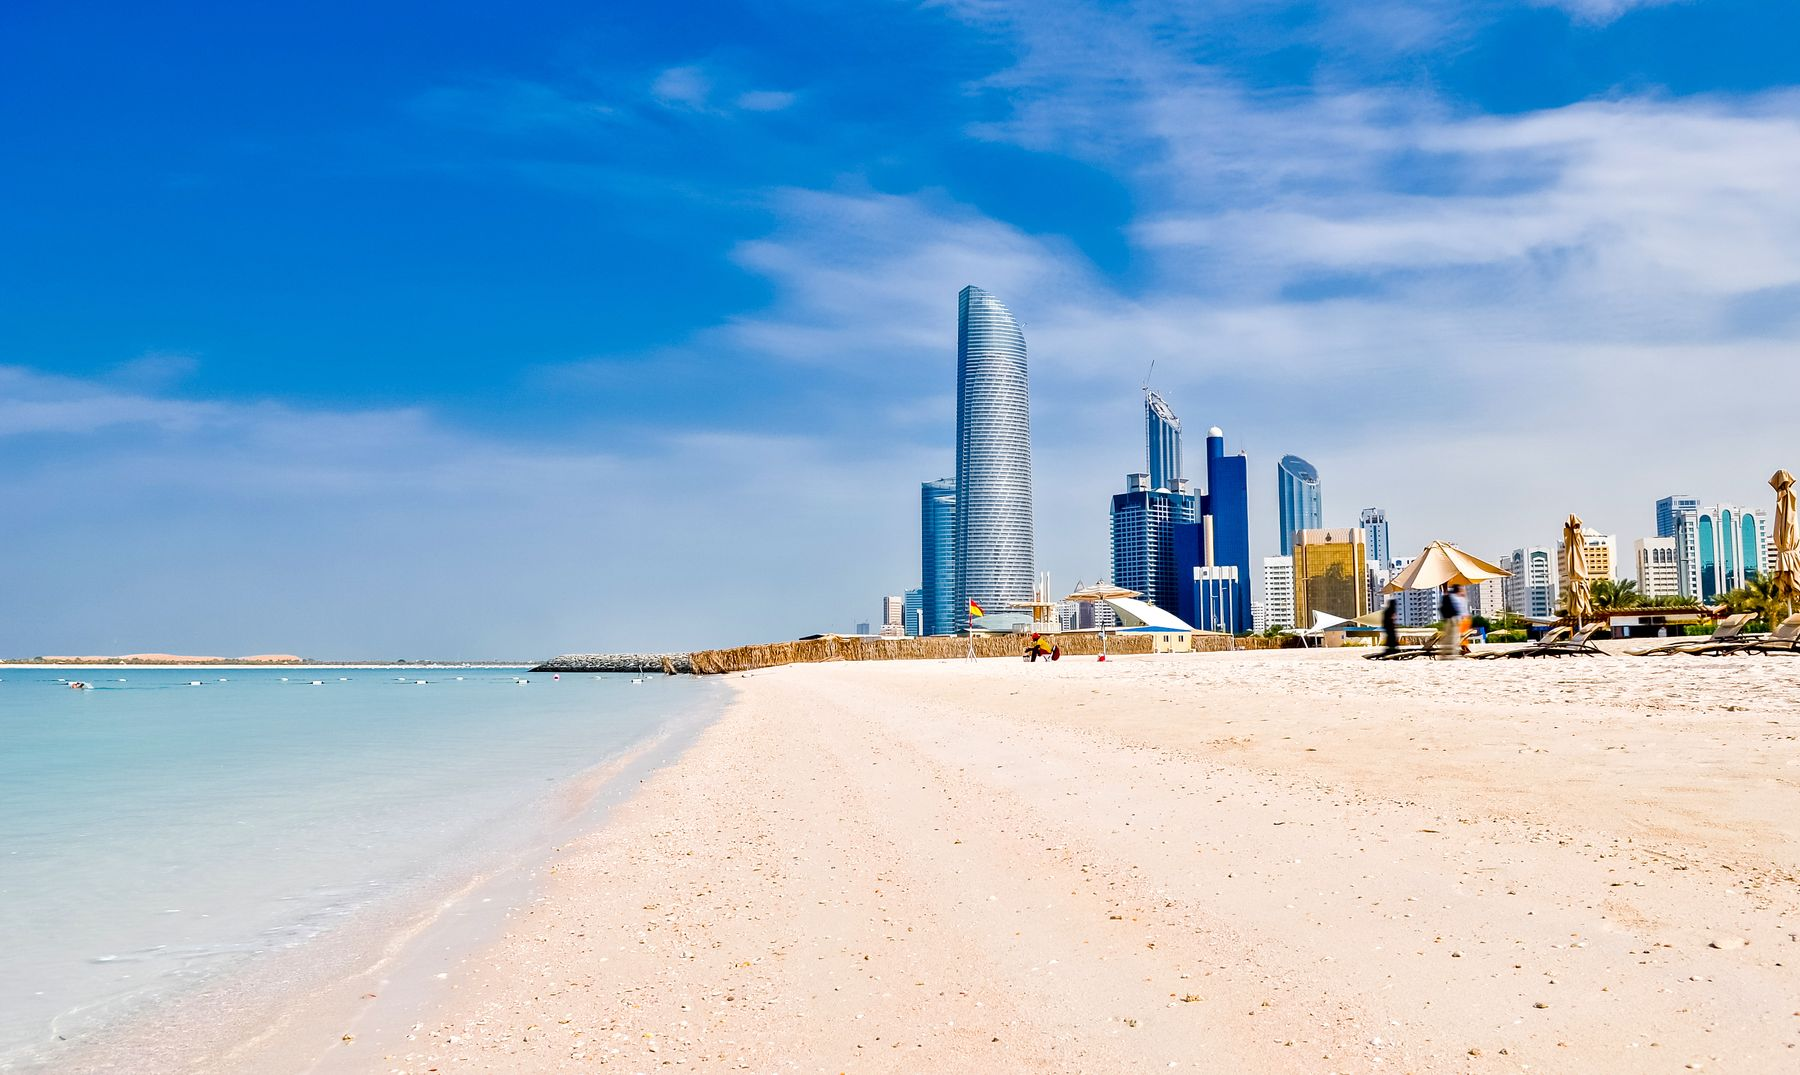 The skyscrapers of Abu Dhabi, as seen from a pristine white sand beach lapped by turquoise water.